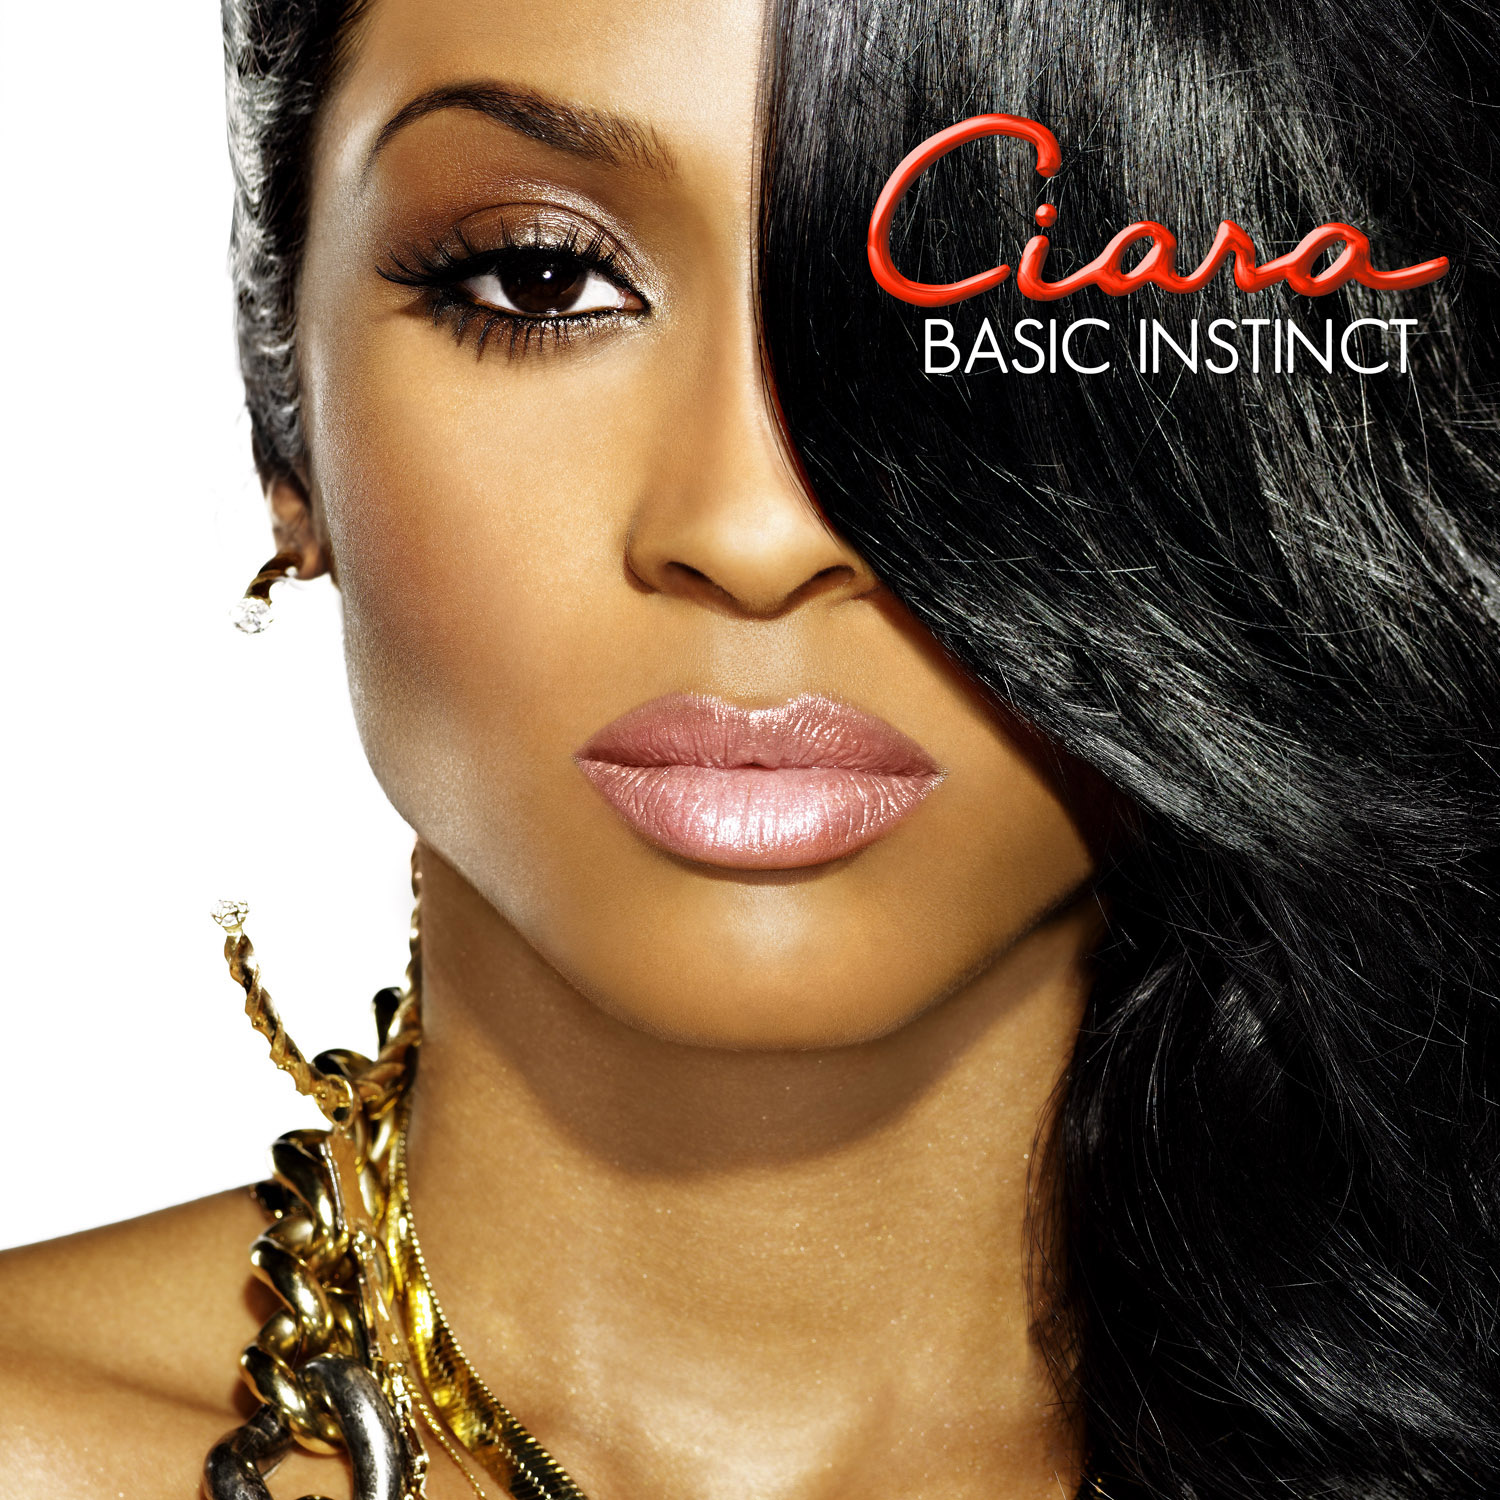 The official artwork to Ciara's new album has been unveiled. I